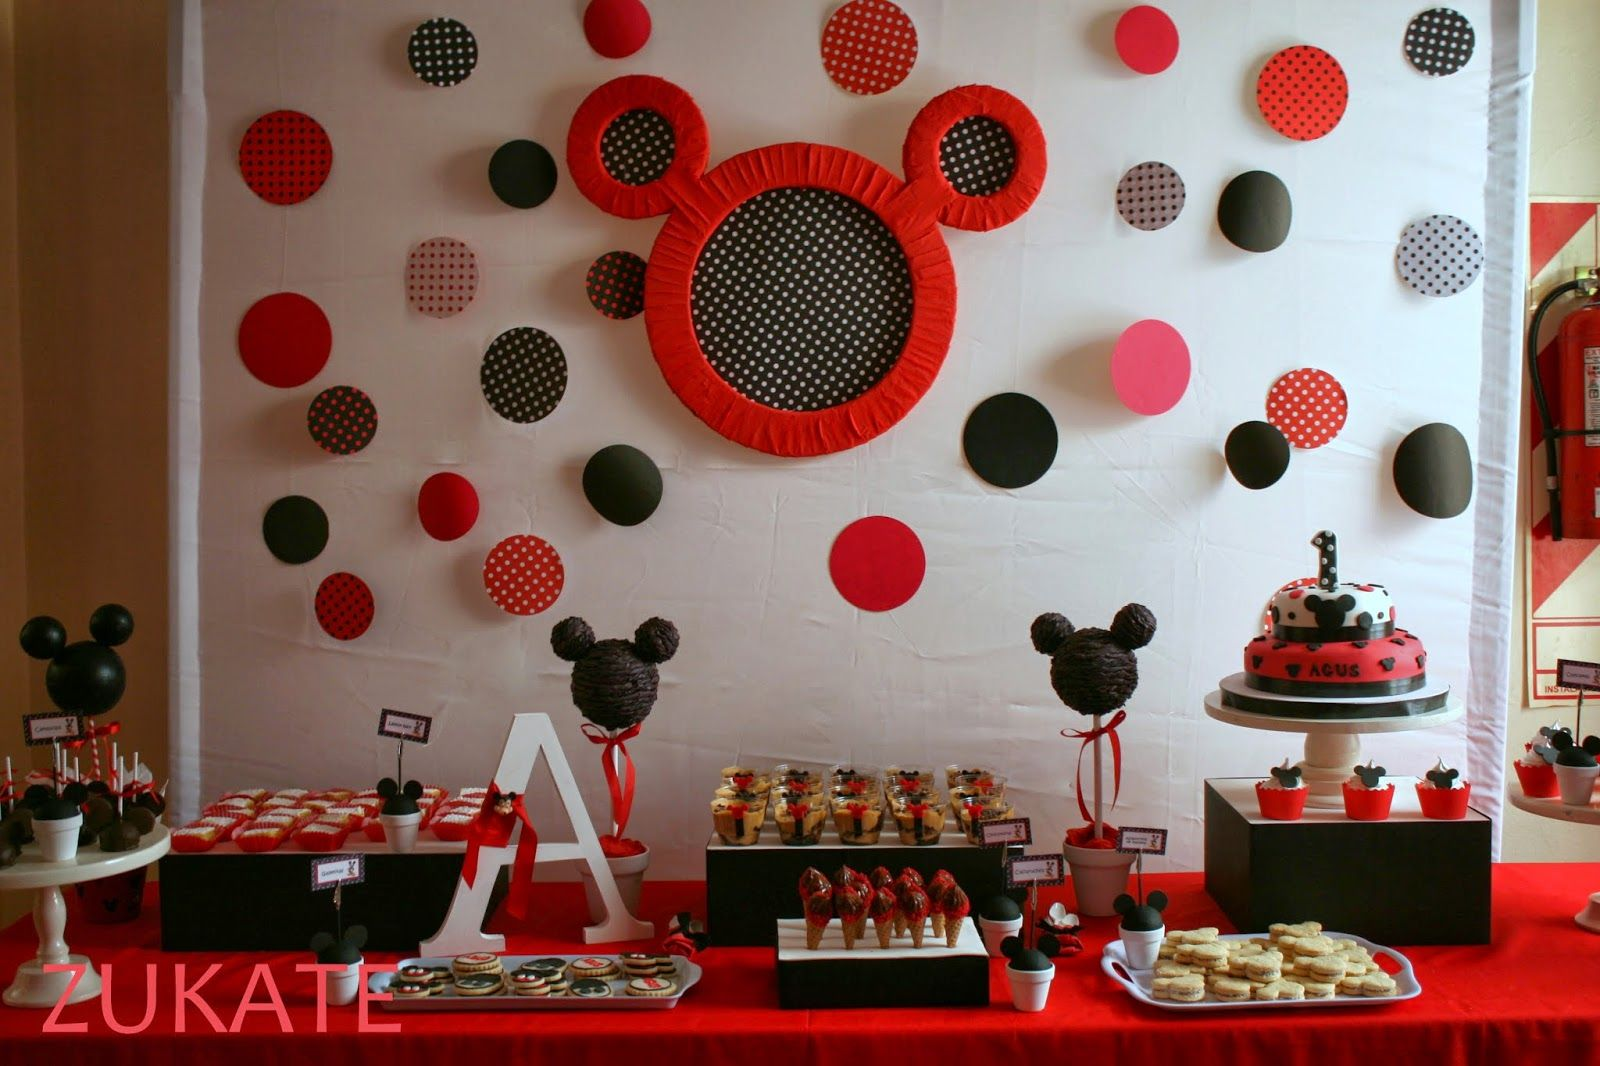 Tortas con adornos de mickey mouse buscar con google for Decoracion la casa de mickey mouse